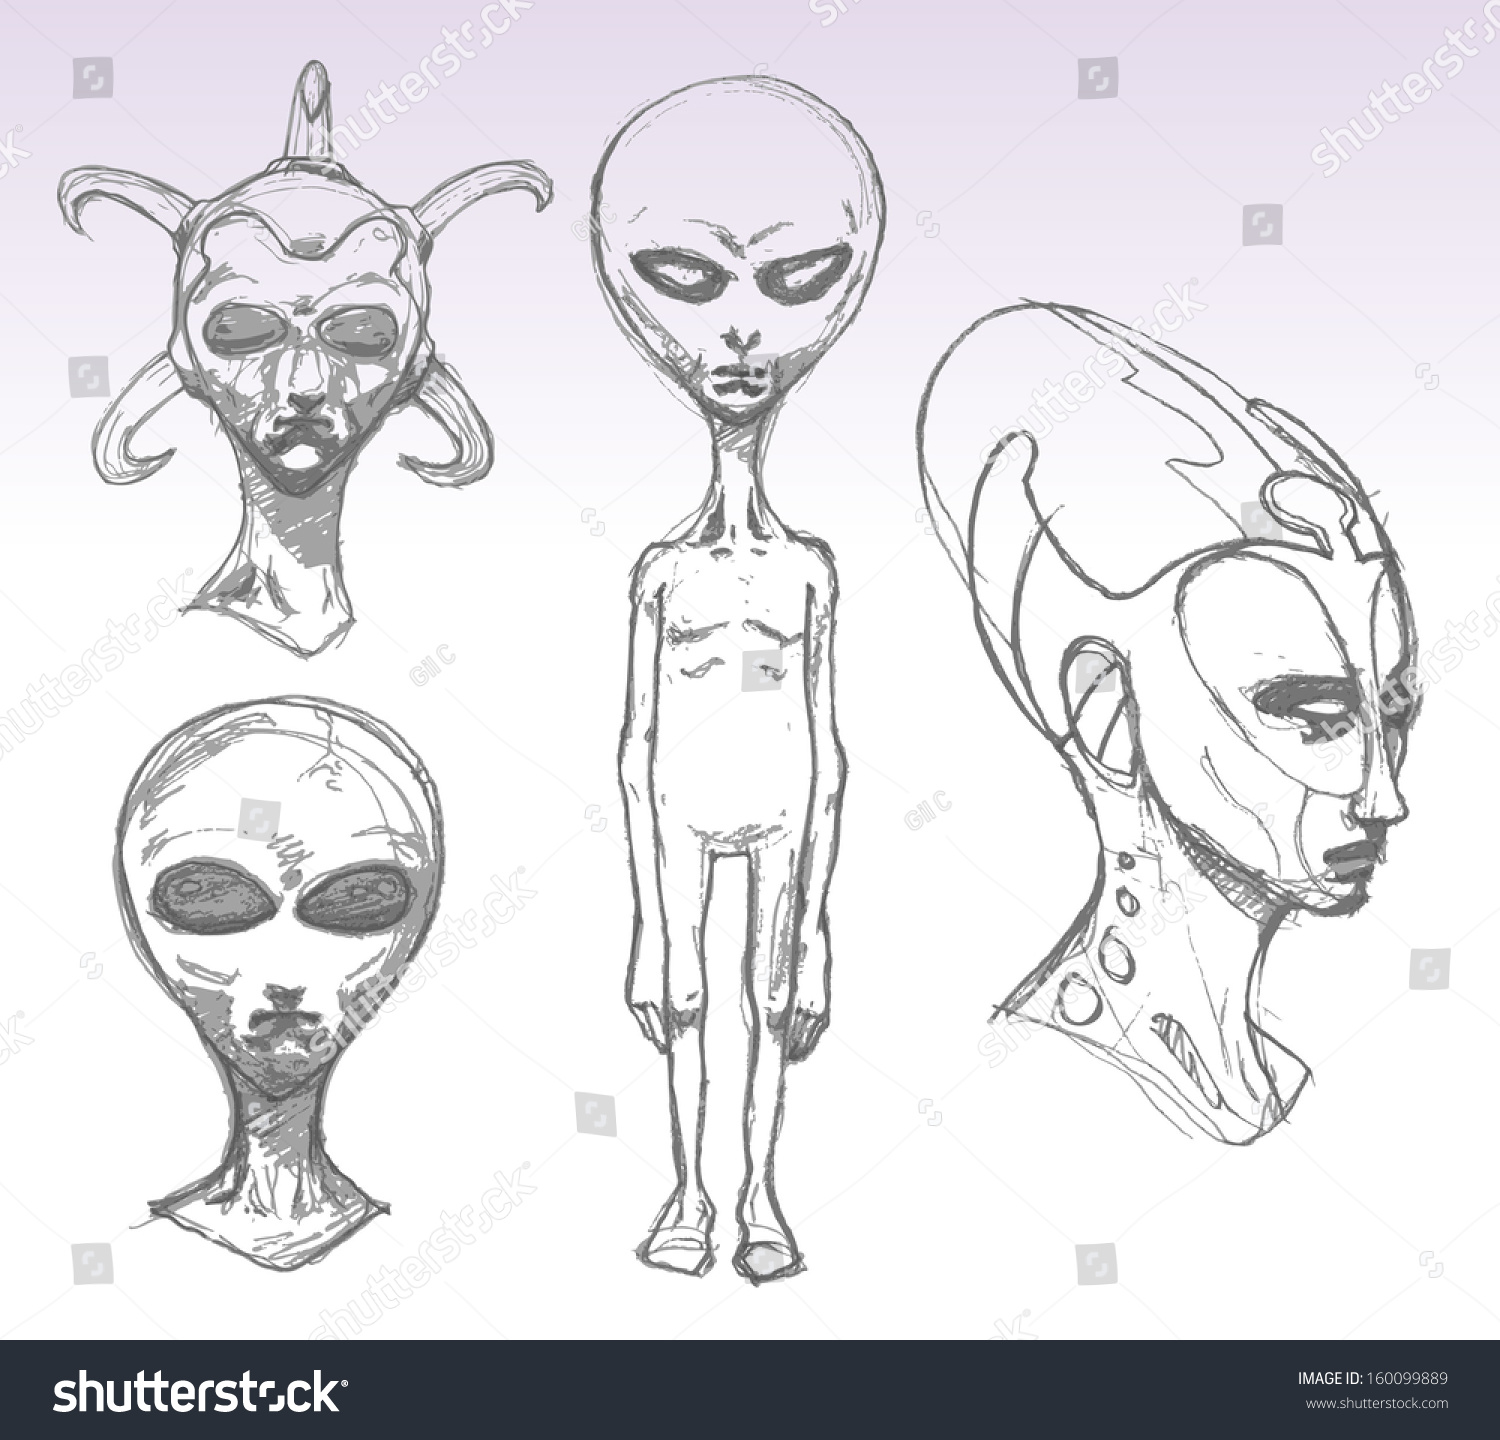 Set Alien Portraits Pencil Drawing Sketch Stock Vector (Royalty Free ...